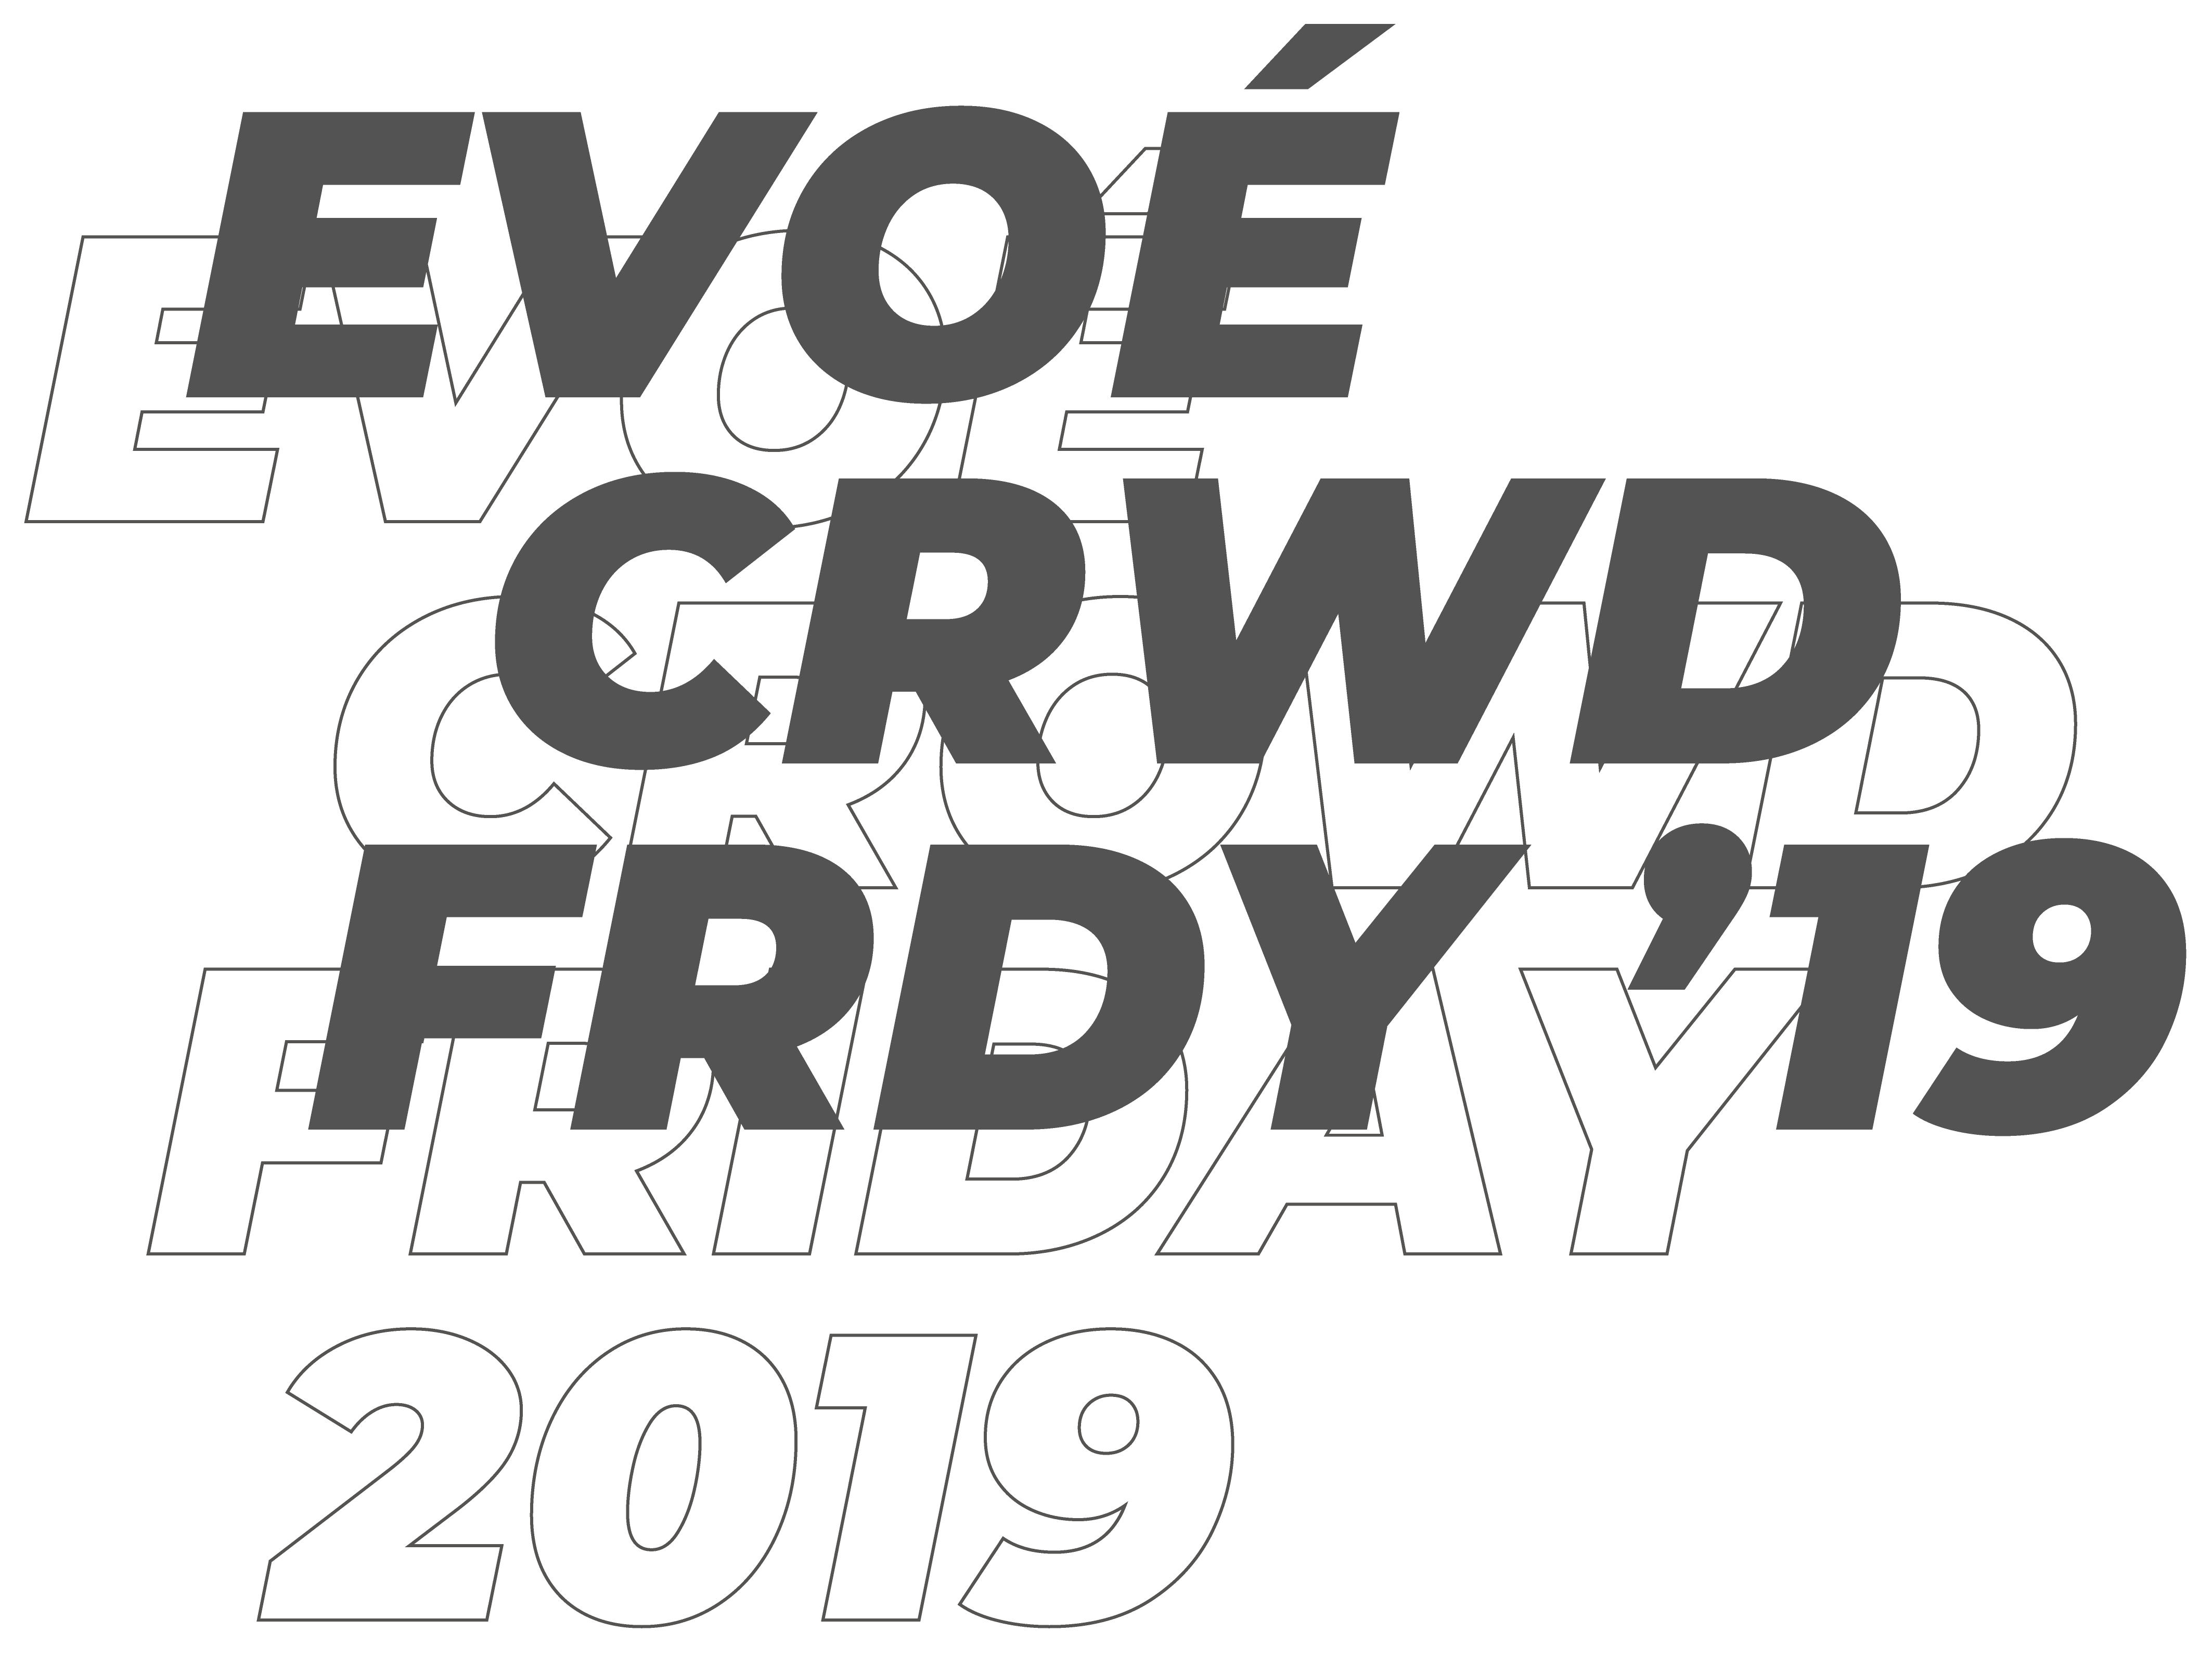 Crowd Friday 2019